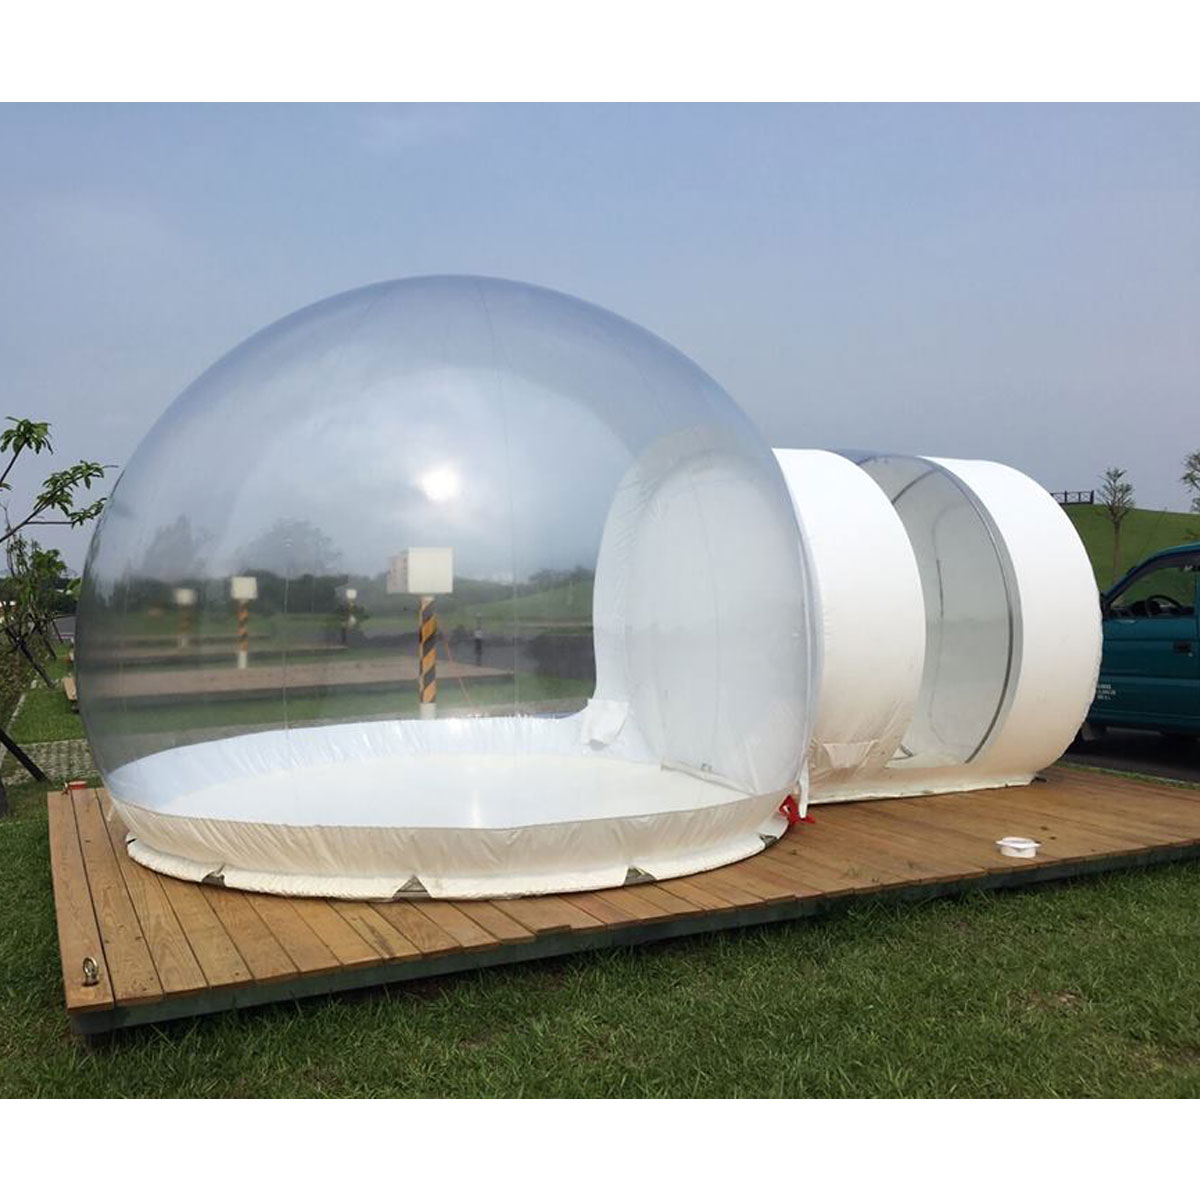 SGODDE gonflable Eco maison tente bricolage maison luxe dôme Camping cabine Lodge bulle d'air